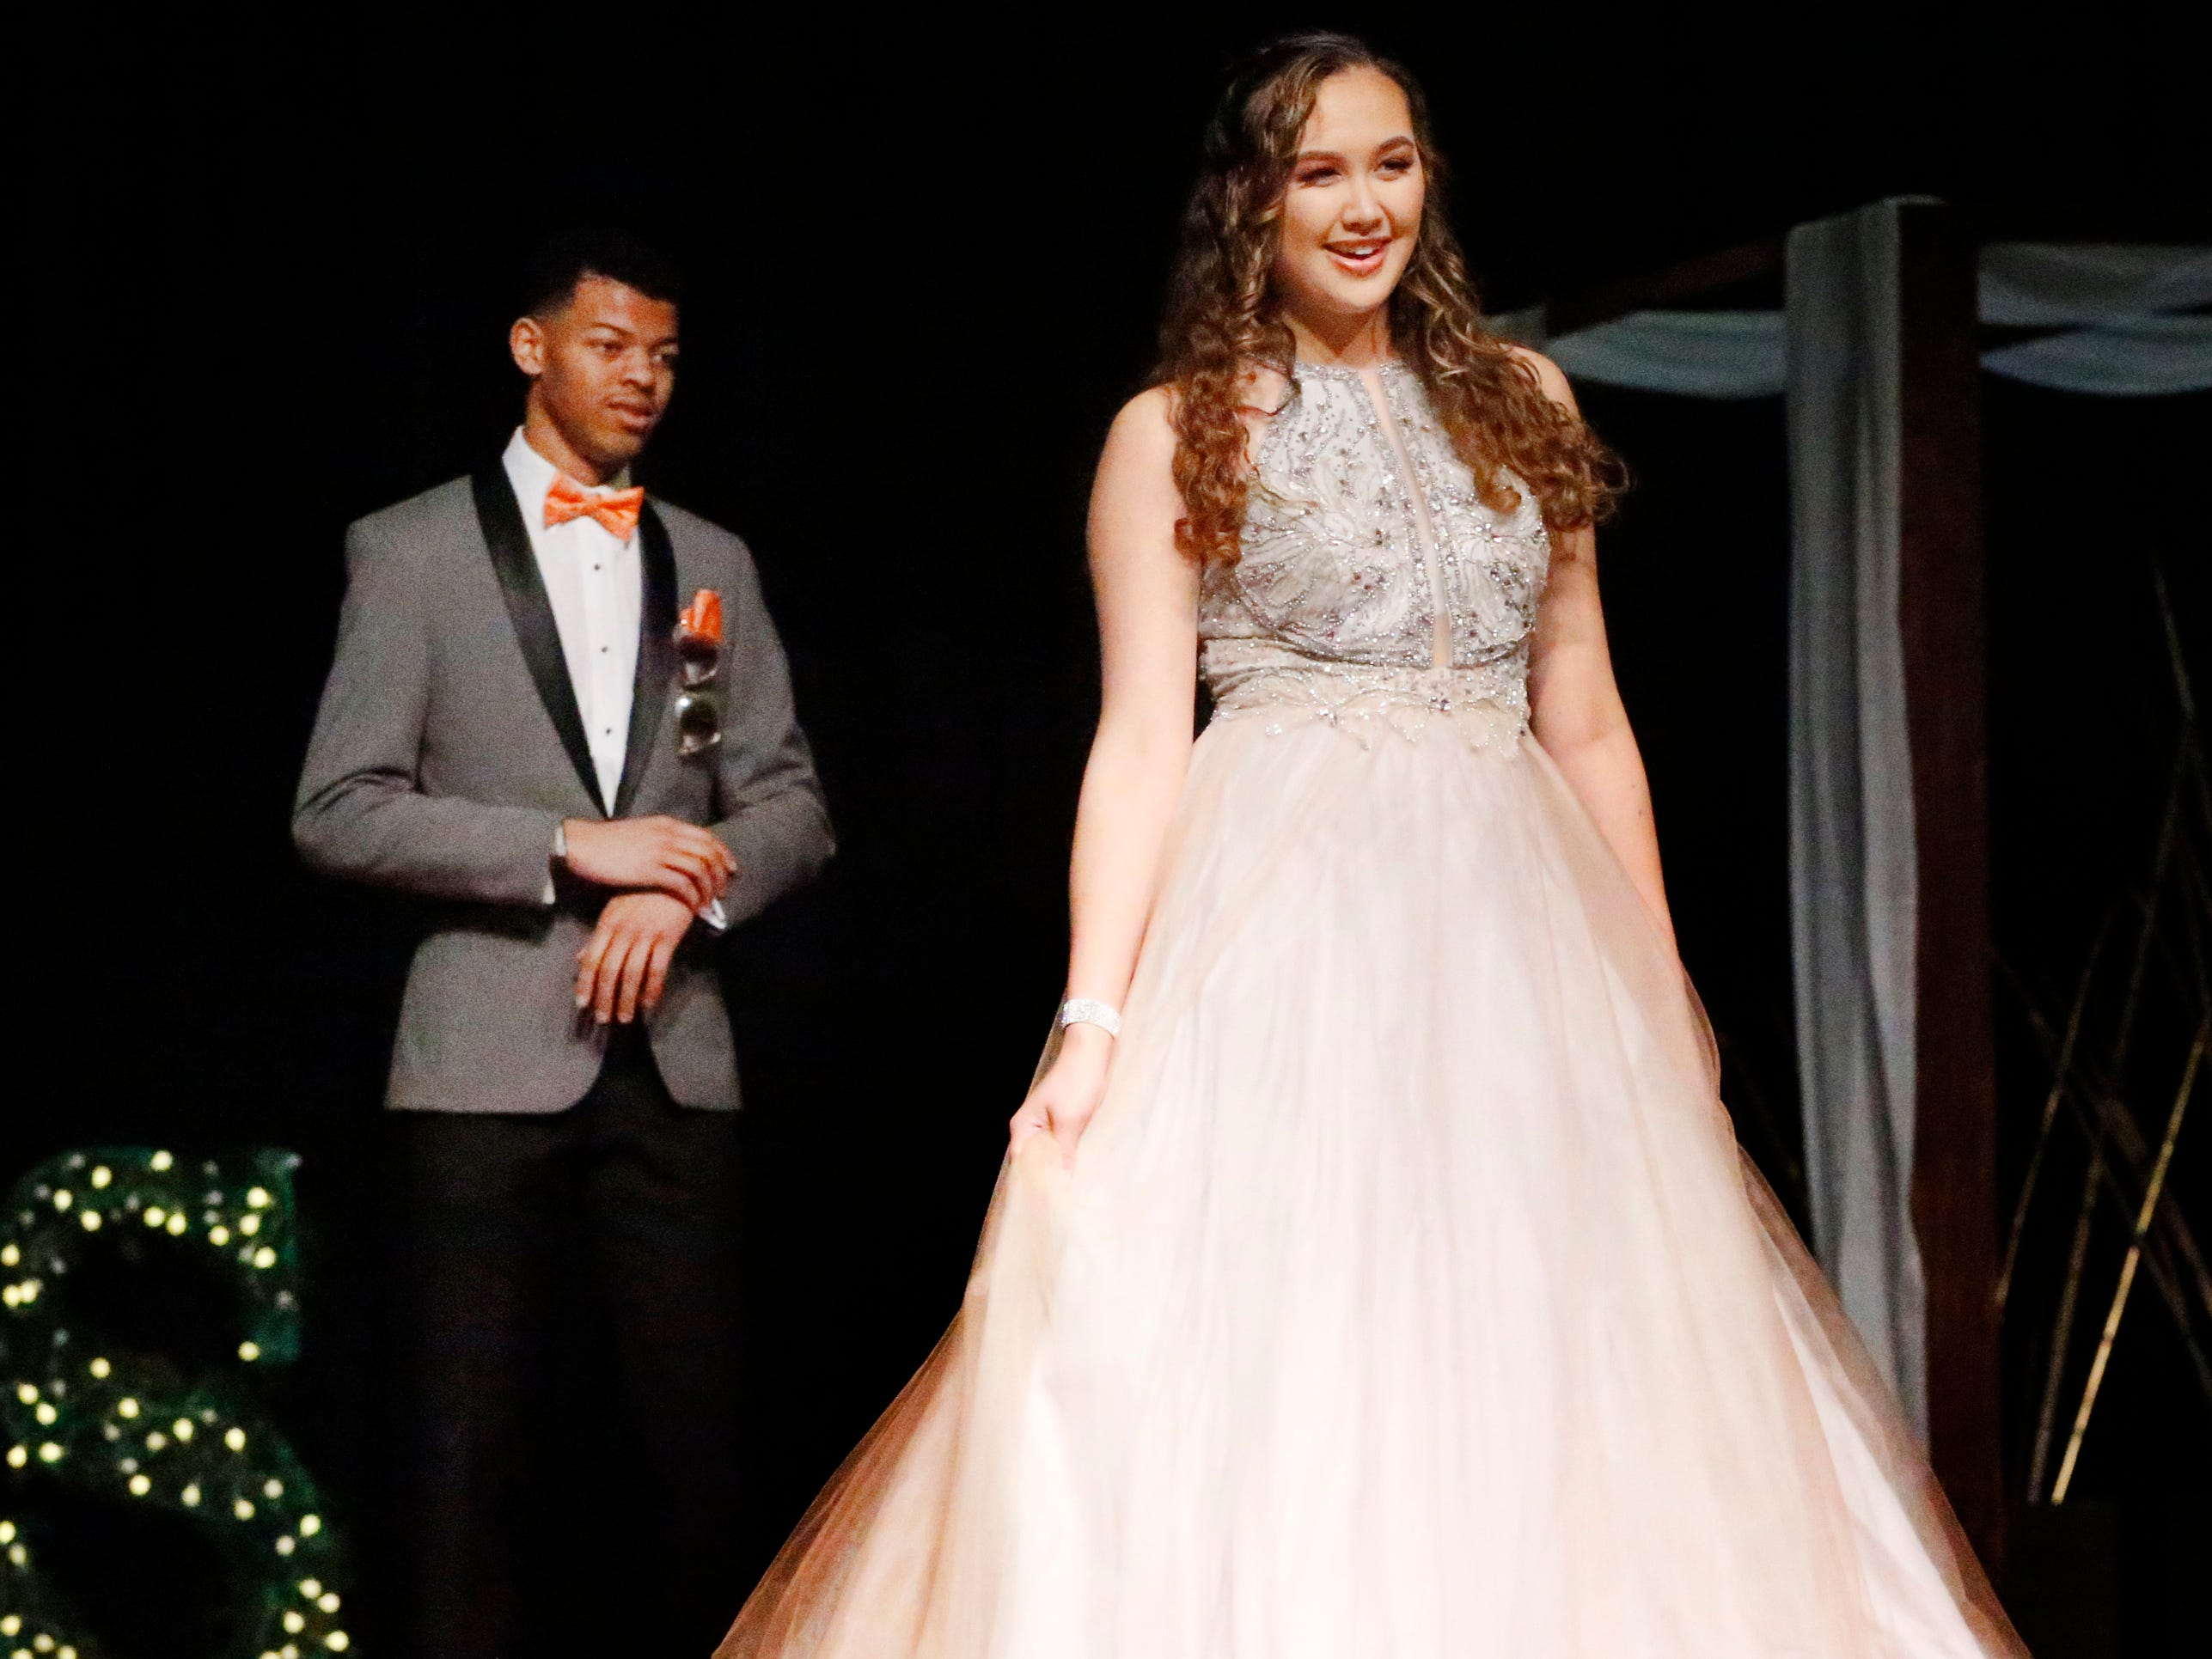 Jasmine Huntsman steps forward to show off her dress as Jaylen Avant waits to show off his tux during the Siegel Prom Fashion show on Thursday, Feb. 14, 2019.